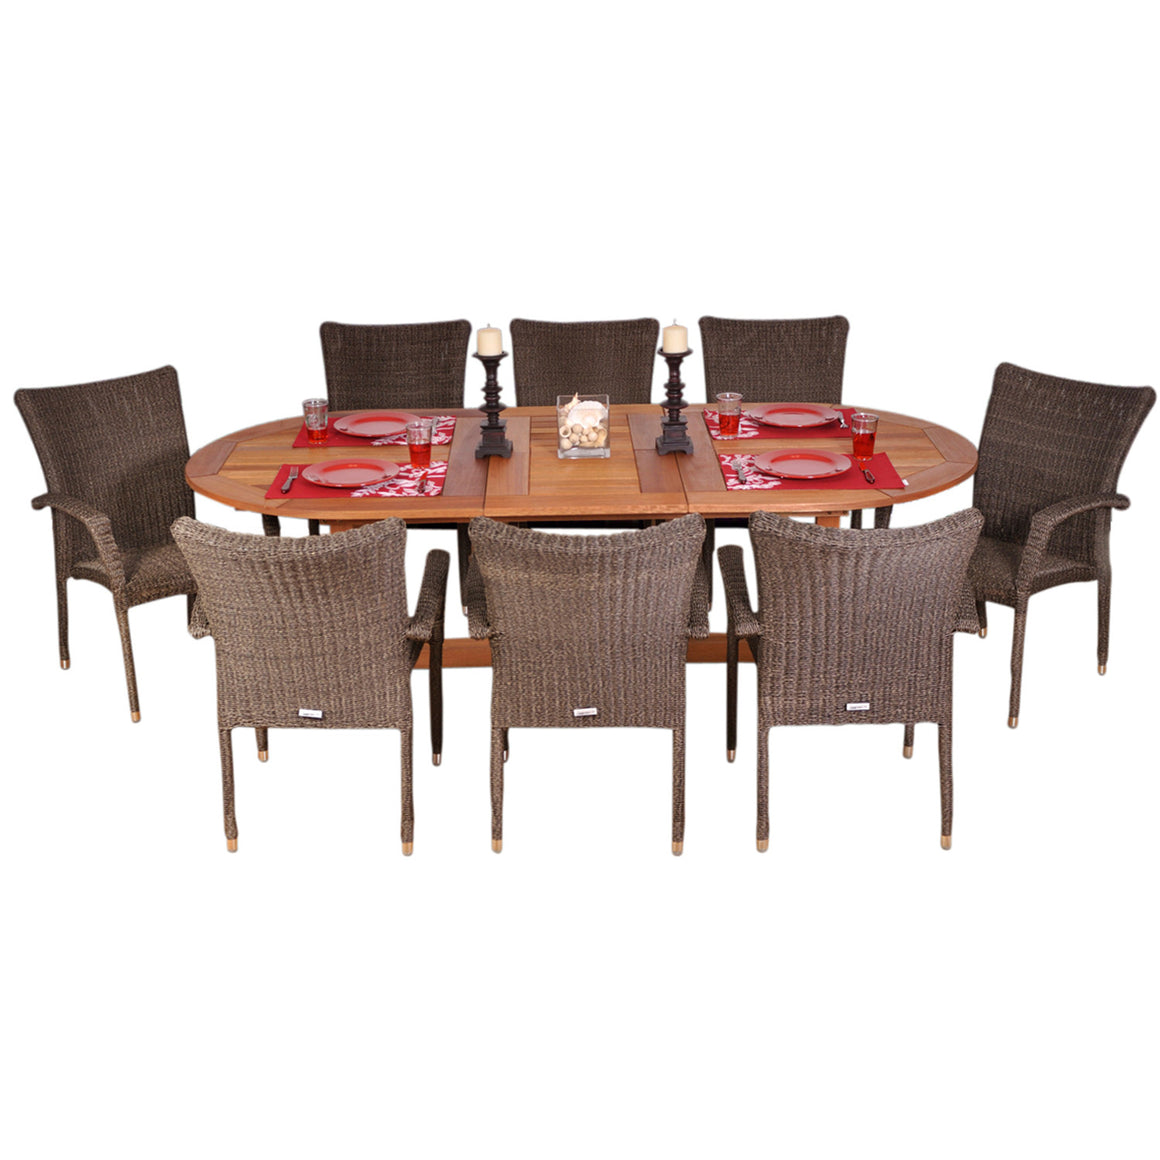 Rennaisance 9 Piece Eucalyptus/Wicker Extendable Oval Patio Dining Set , International Home Miami- grayburd